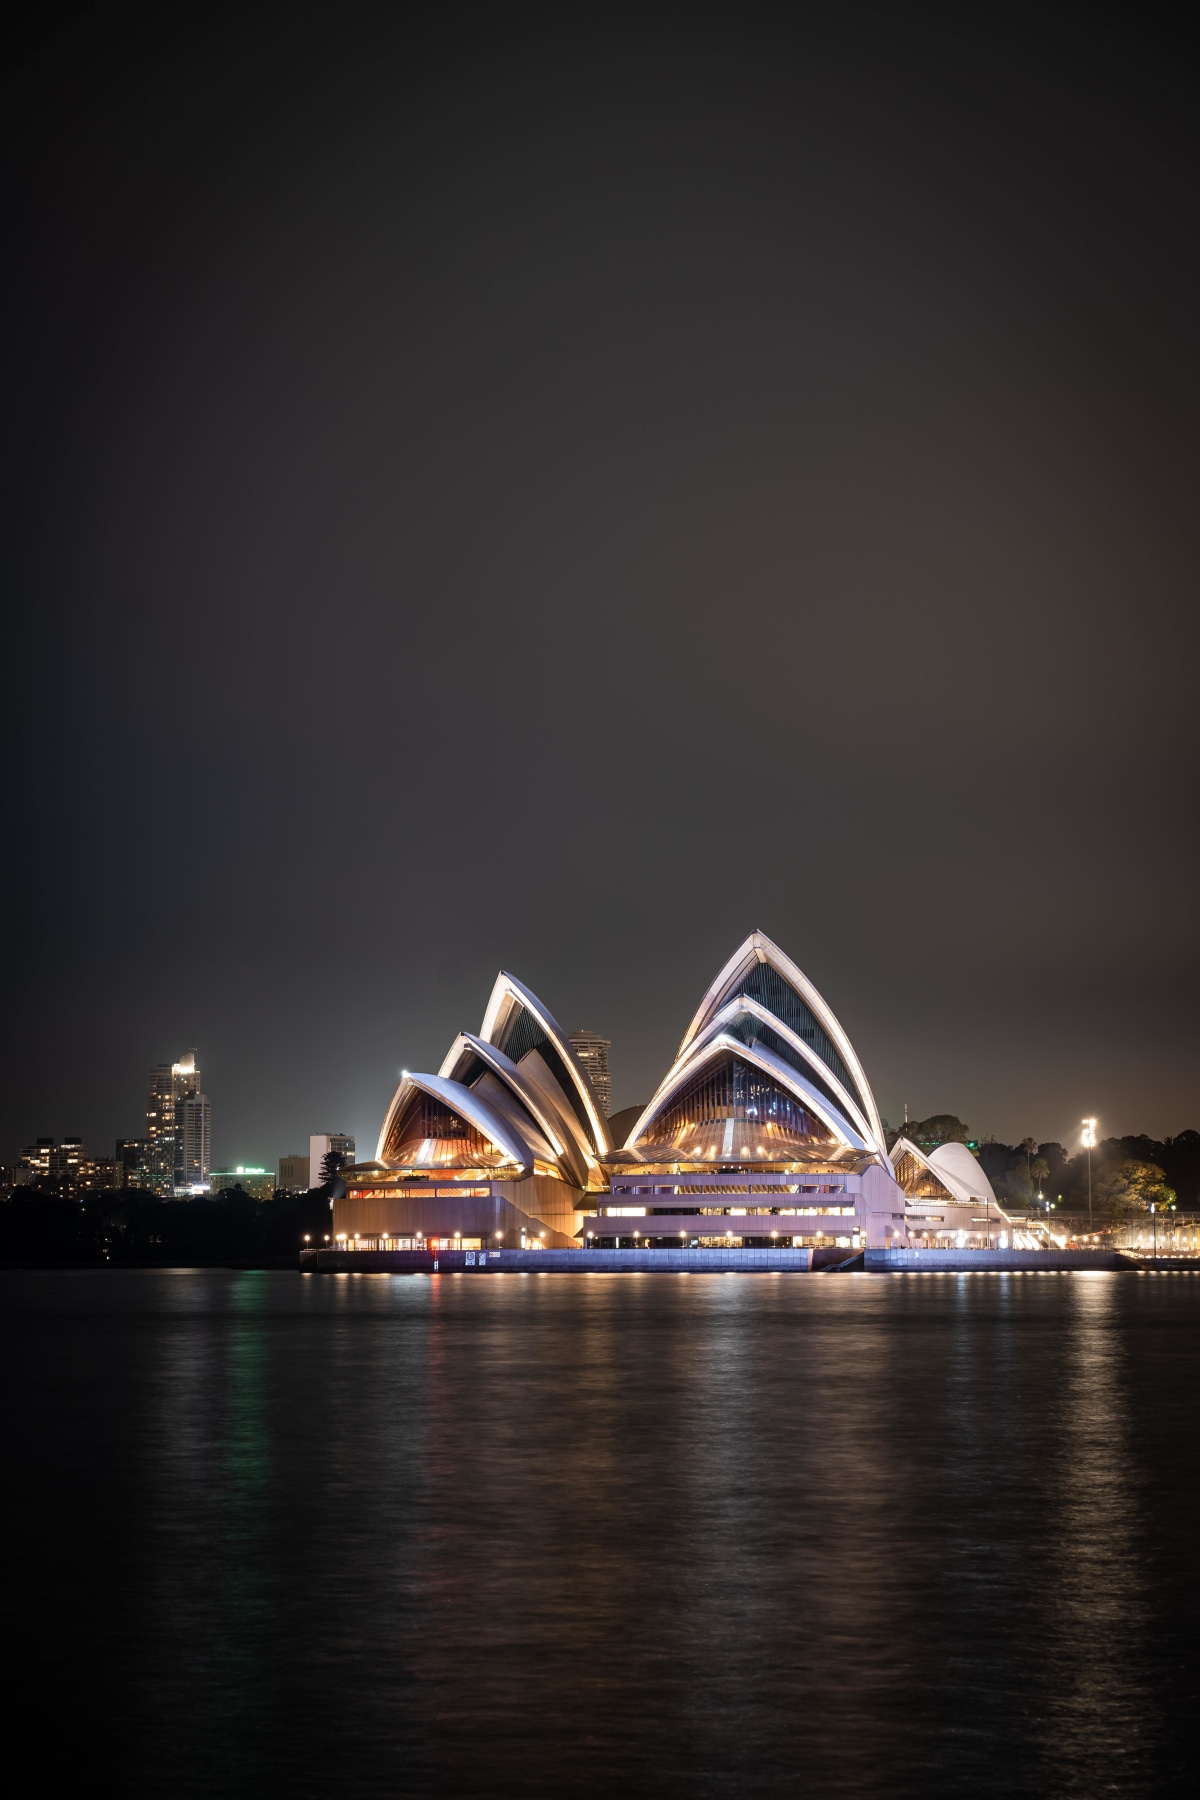 View of The Opera House from Milsons Point